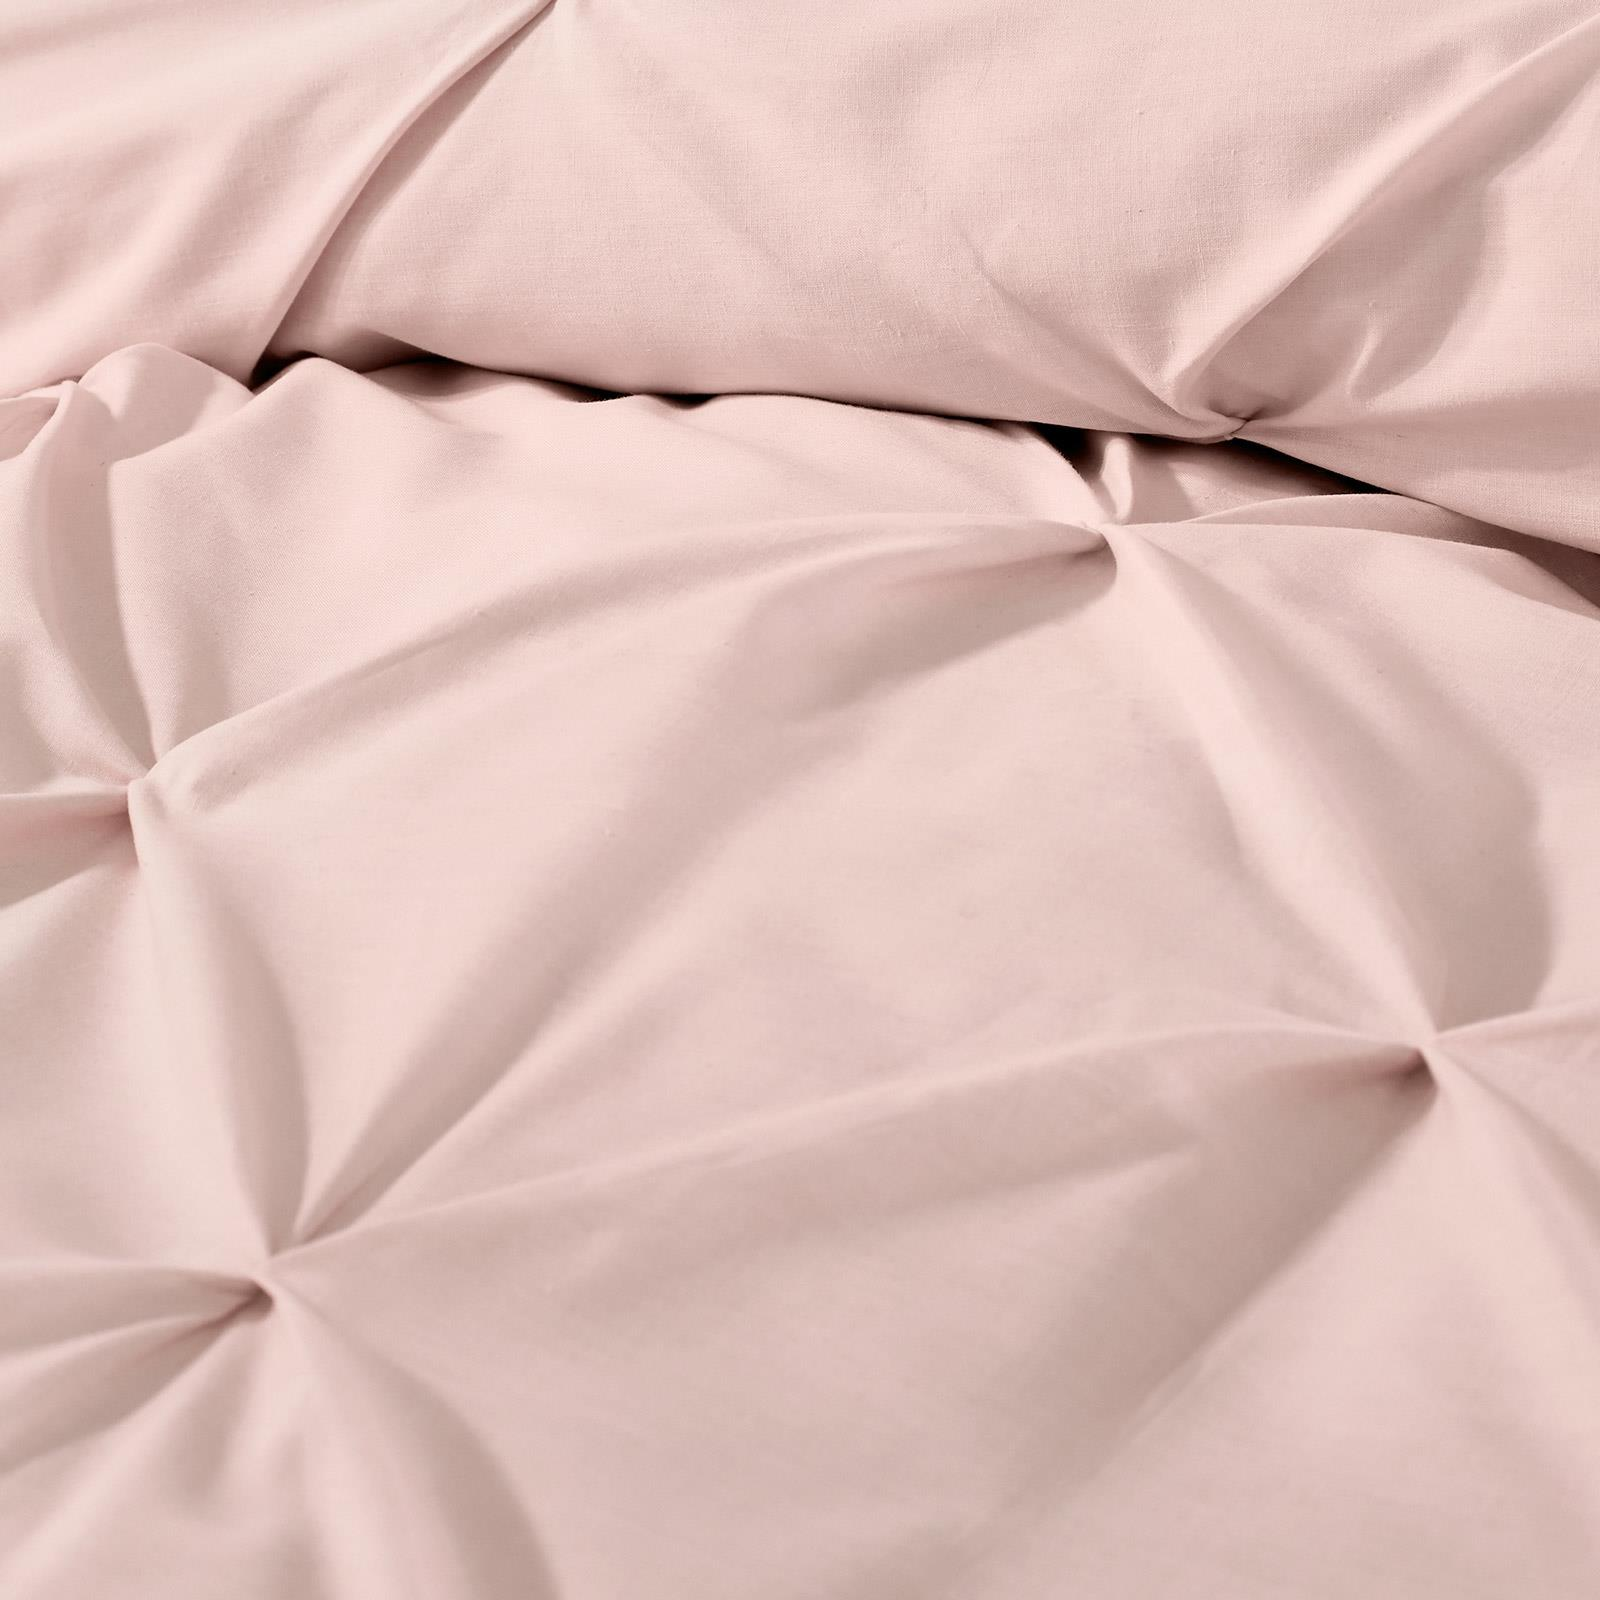 Blush-Duvet-Covers-Ruched-Pin-Tuck-Stitched-Plain-Pink-Quilt-Cover-Bedding-Sets thumbnail 11